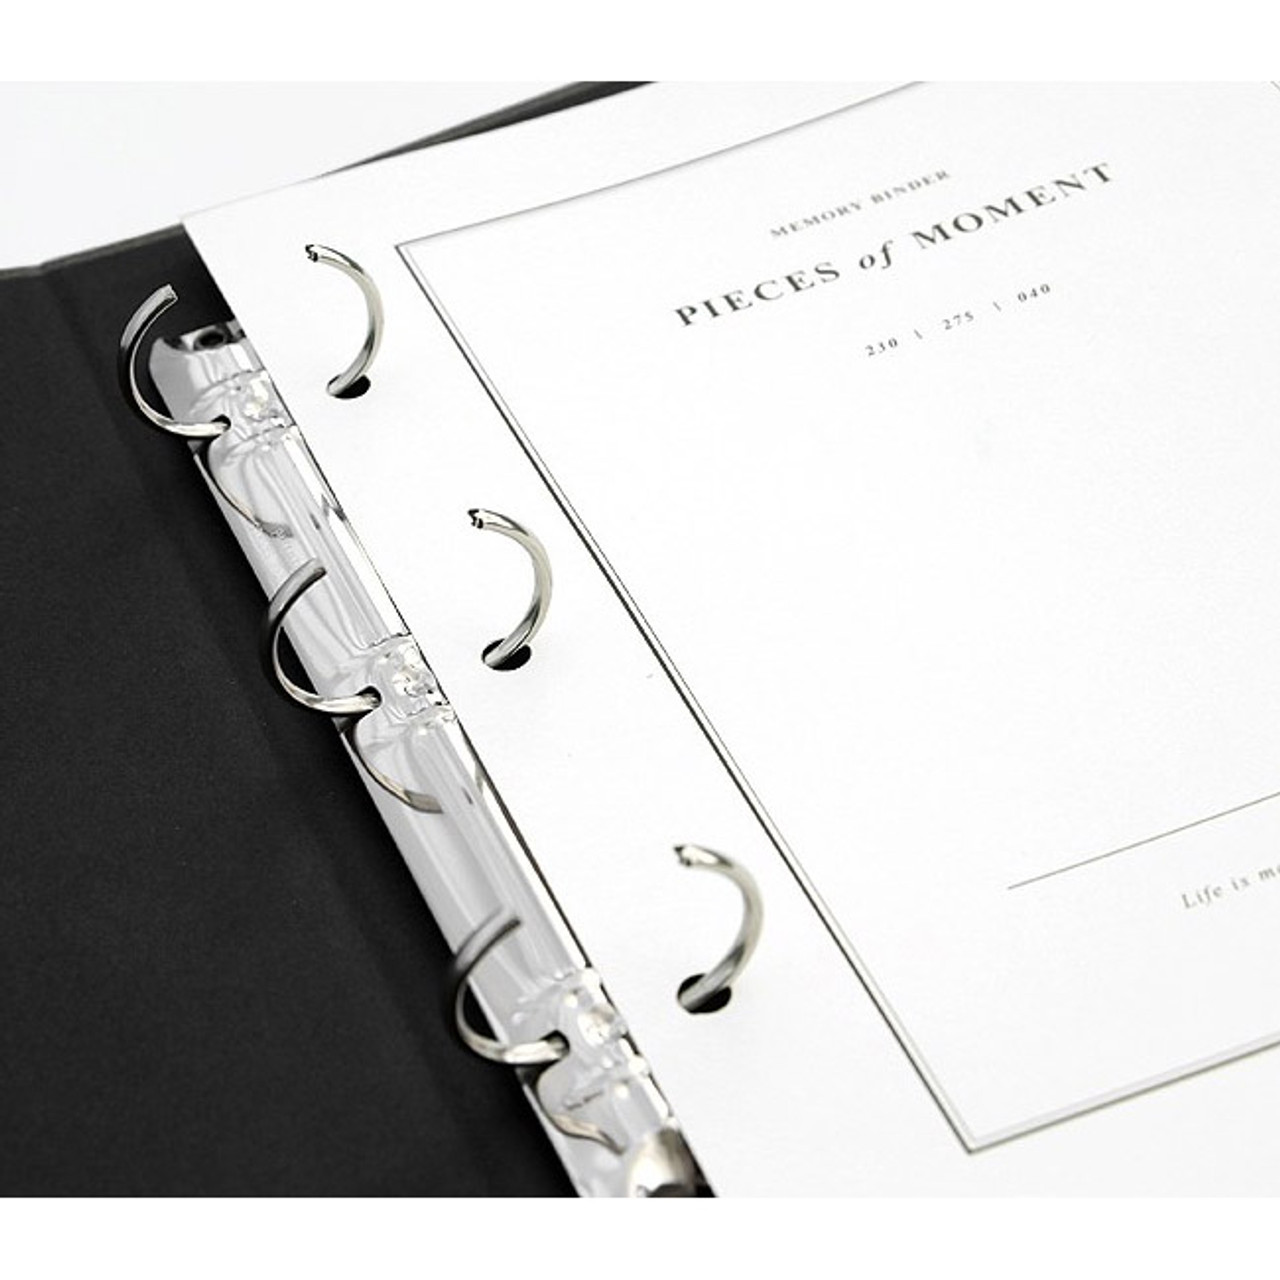 iconic piece of moment memory 3 ring binder fallindesign